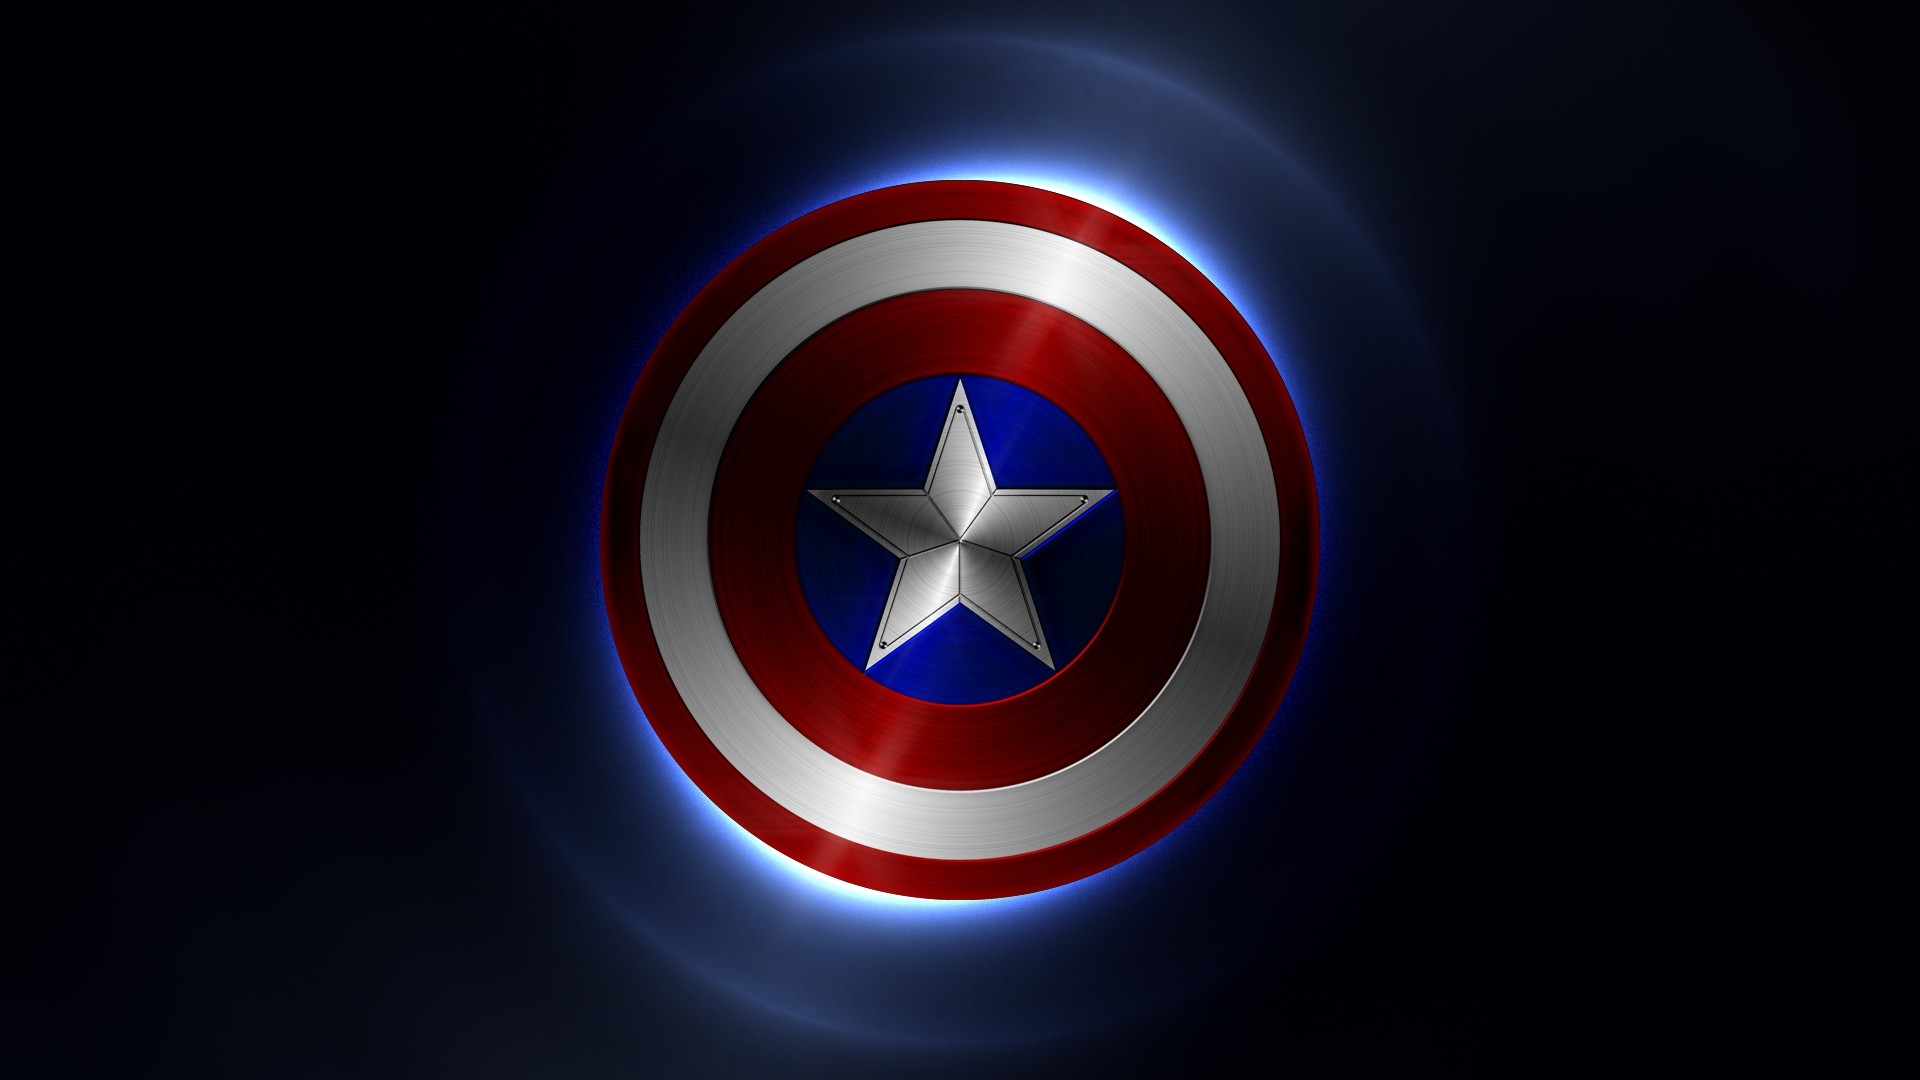 1920x1080 captain america shield hd